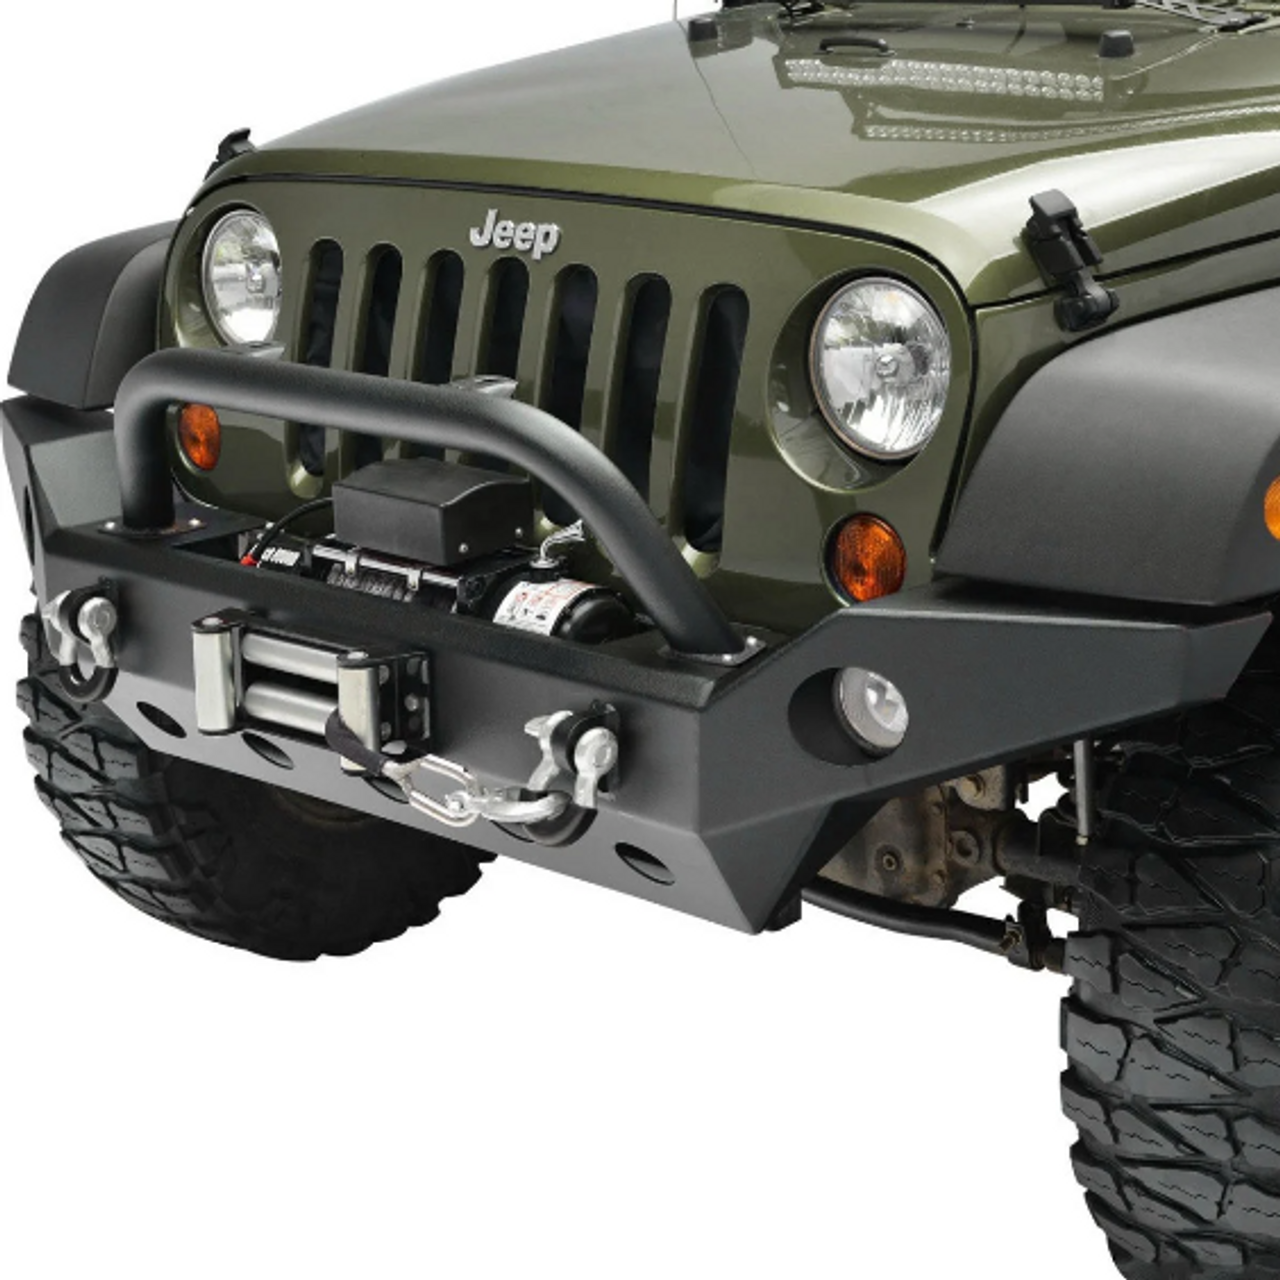 Paramount Automotive 51-0362 Full Width Front Bumper with Fog Housings & D-Rings for Jeep Wrangler JK 2007-2018